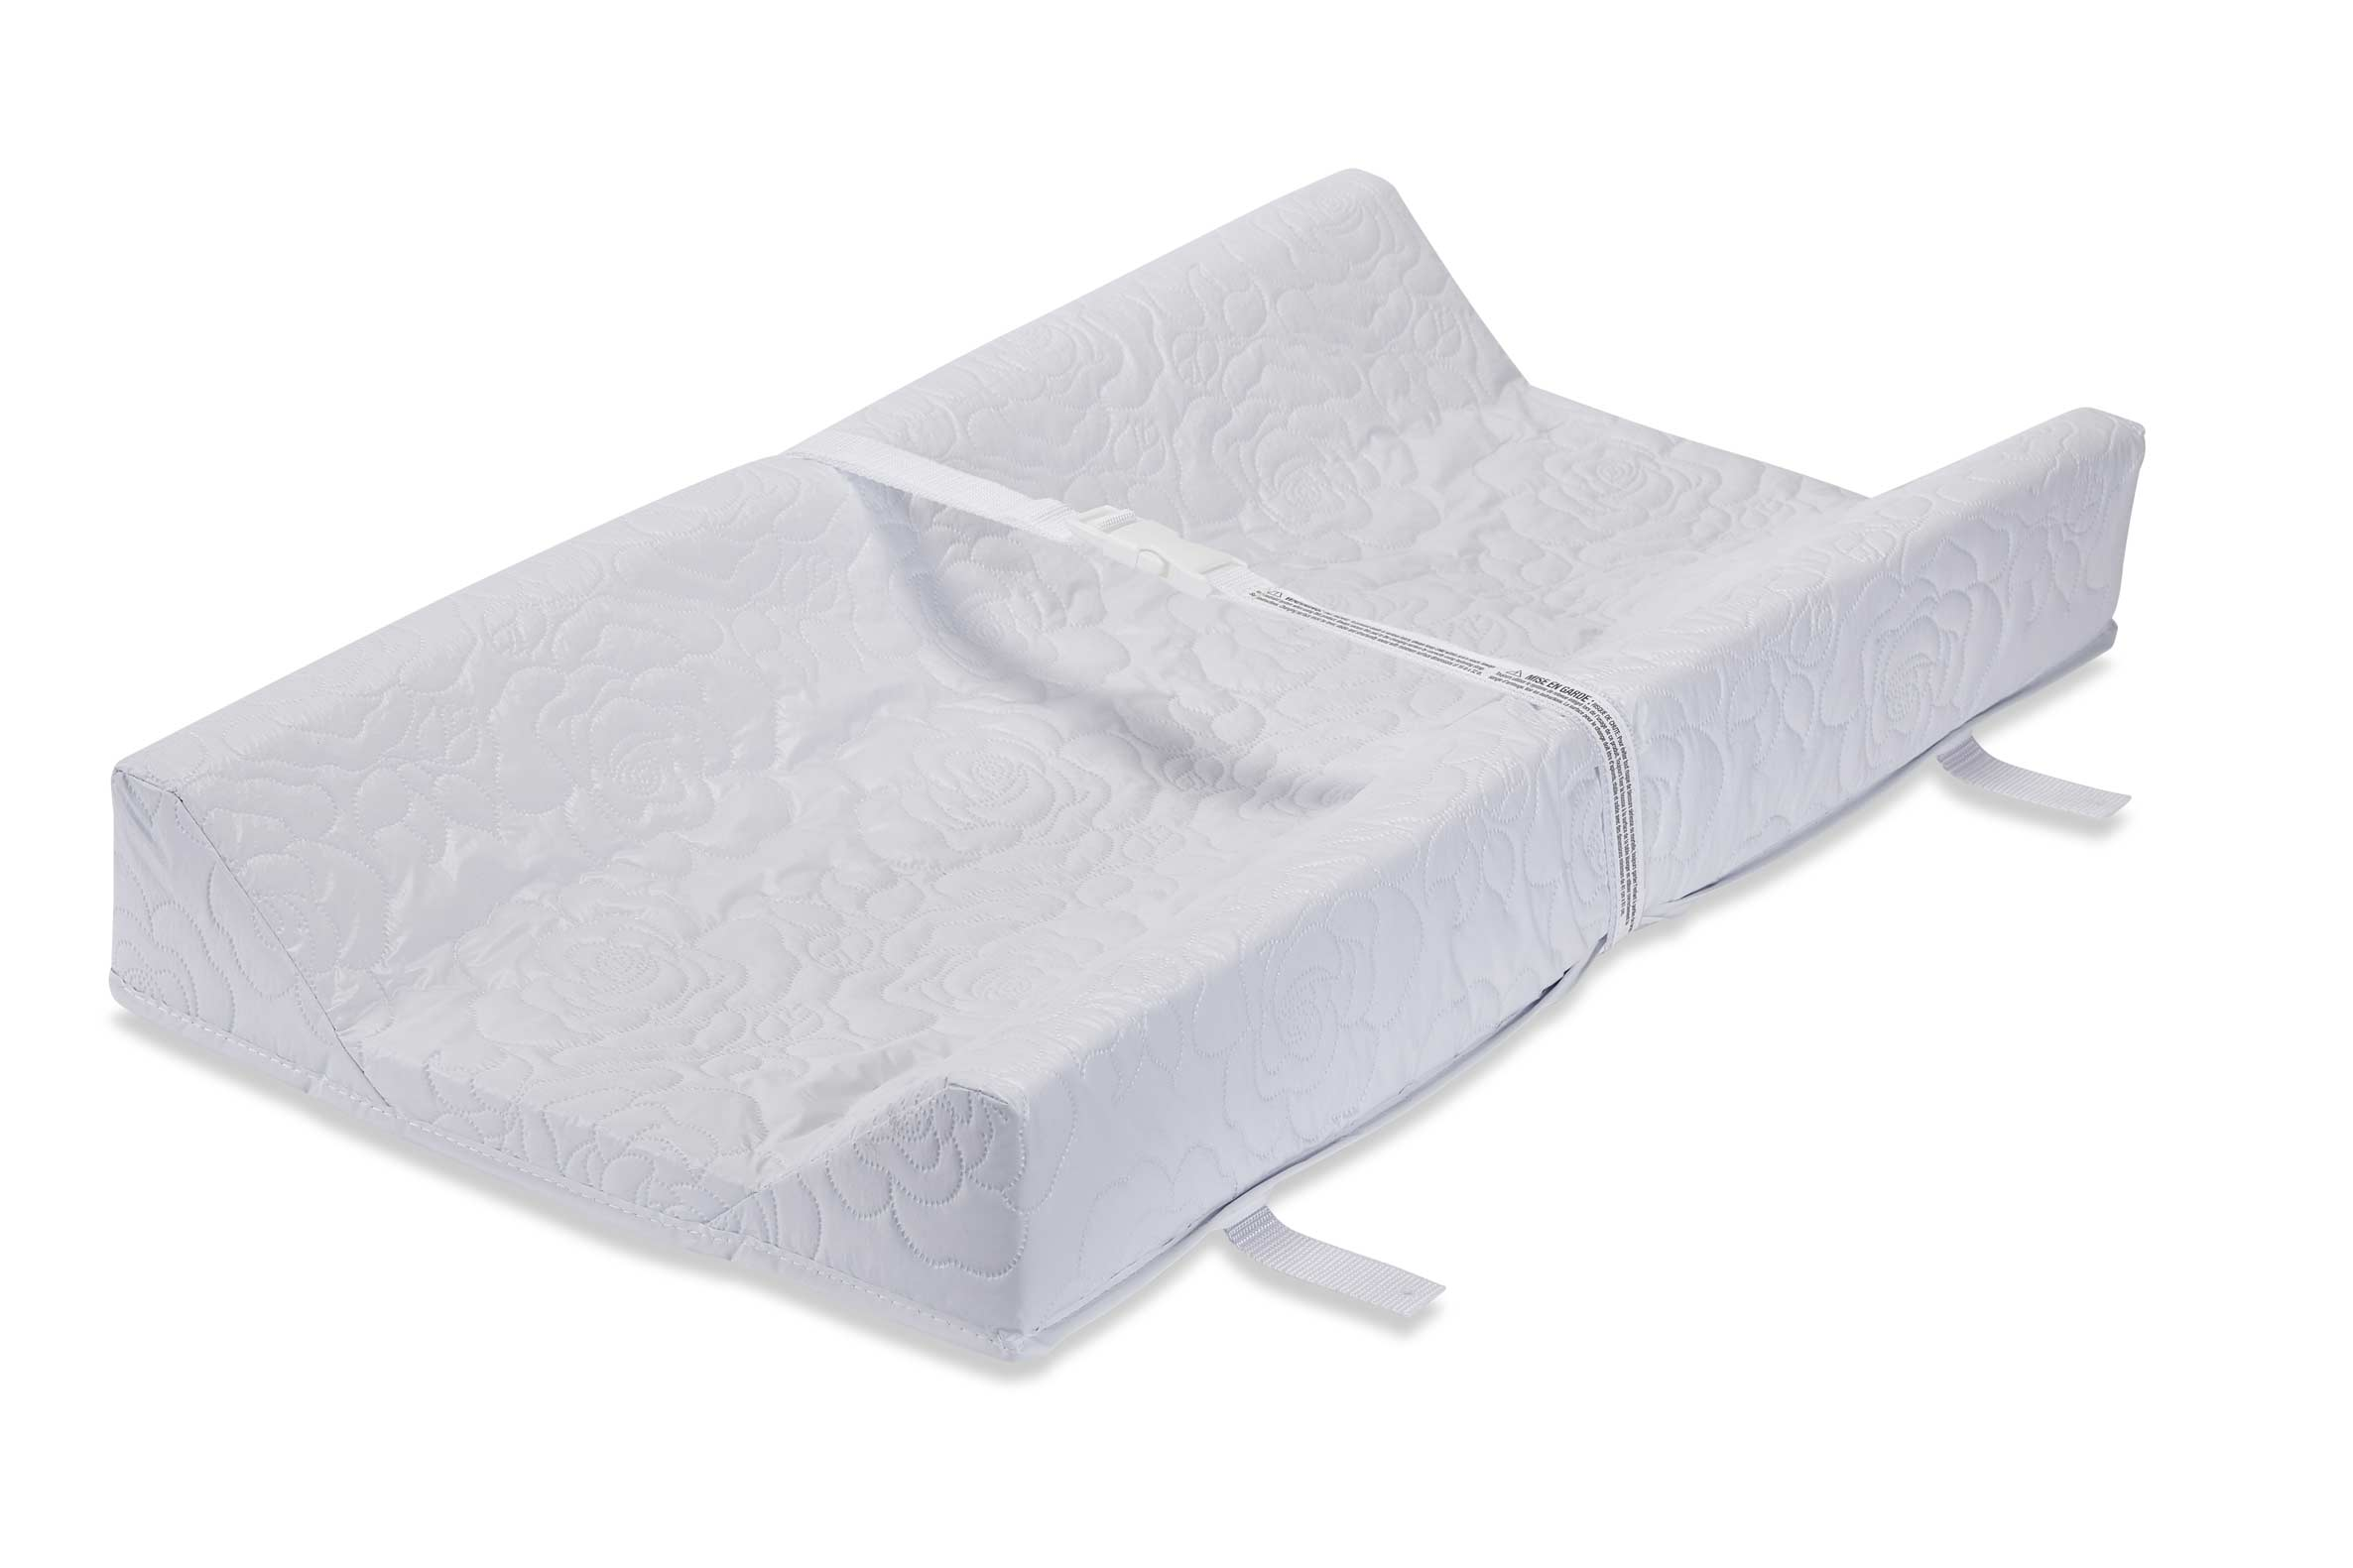 L.A. Baby Contour Changing Pad by L.A. Baby